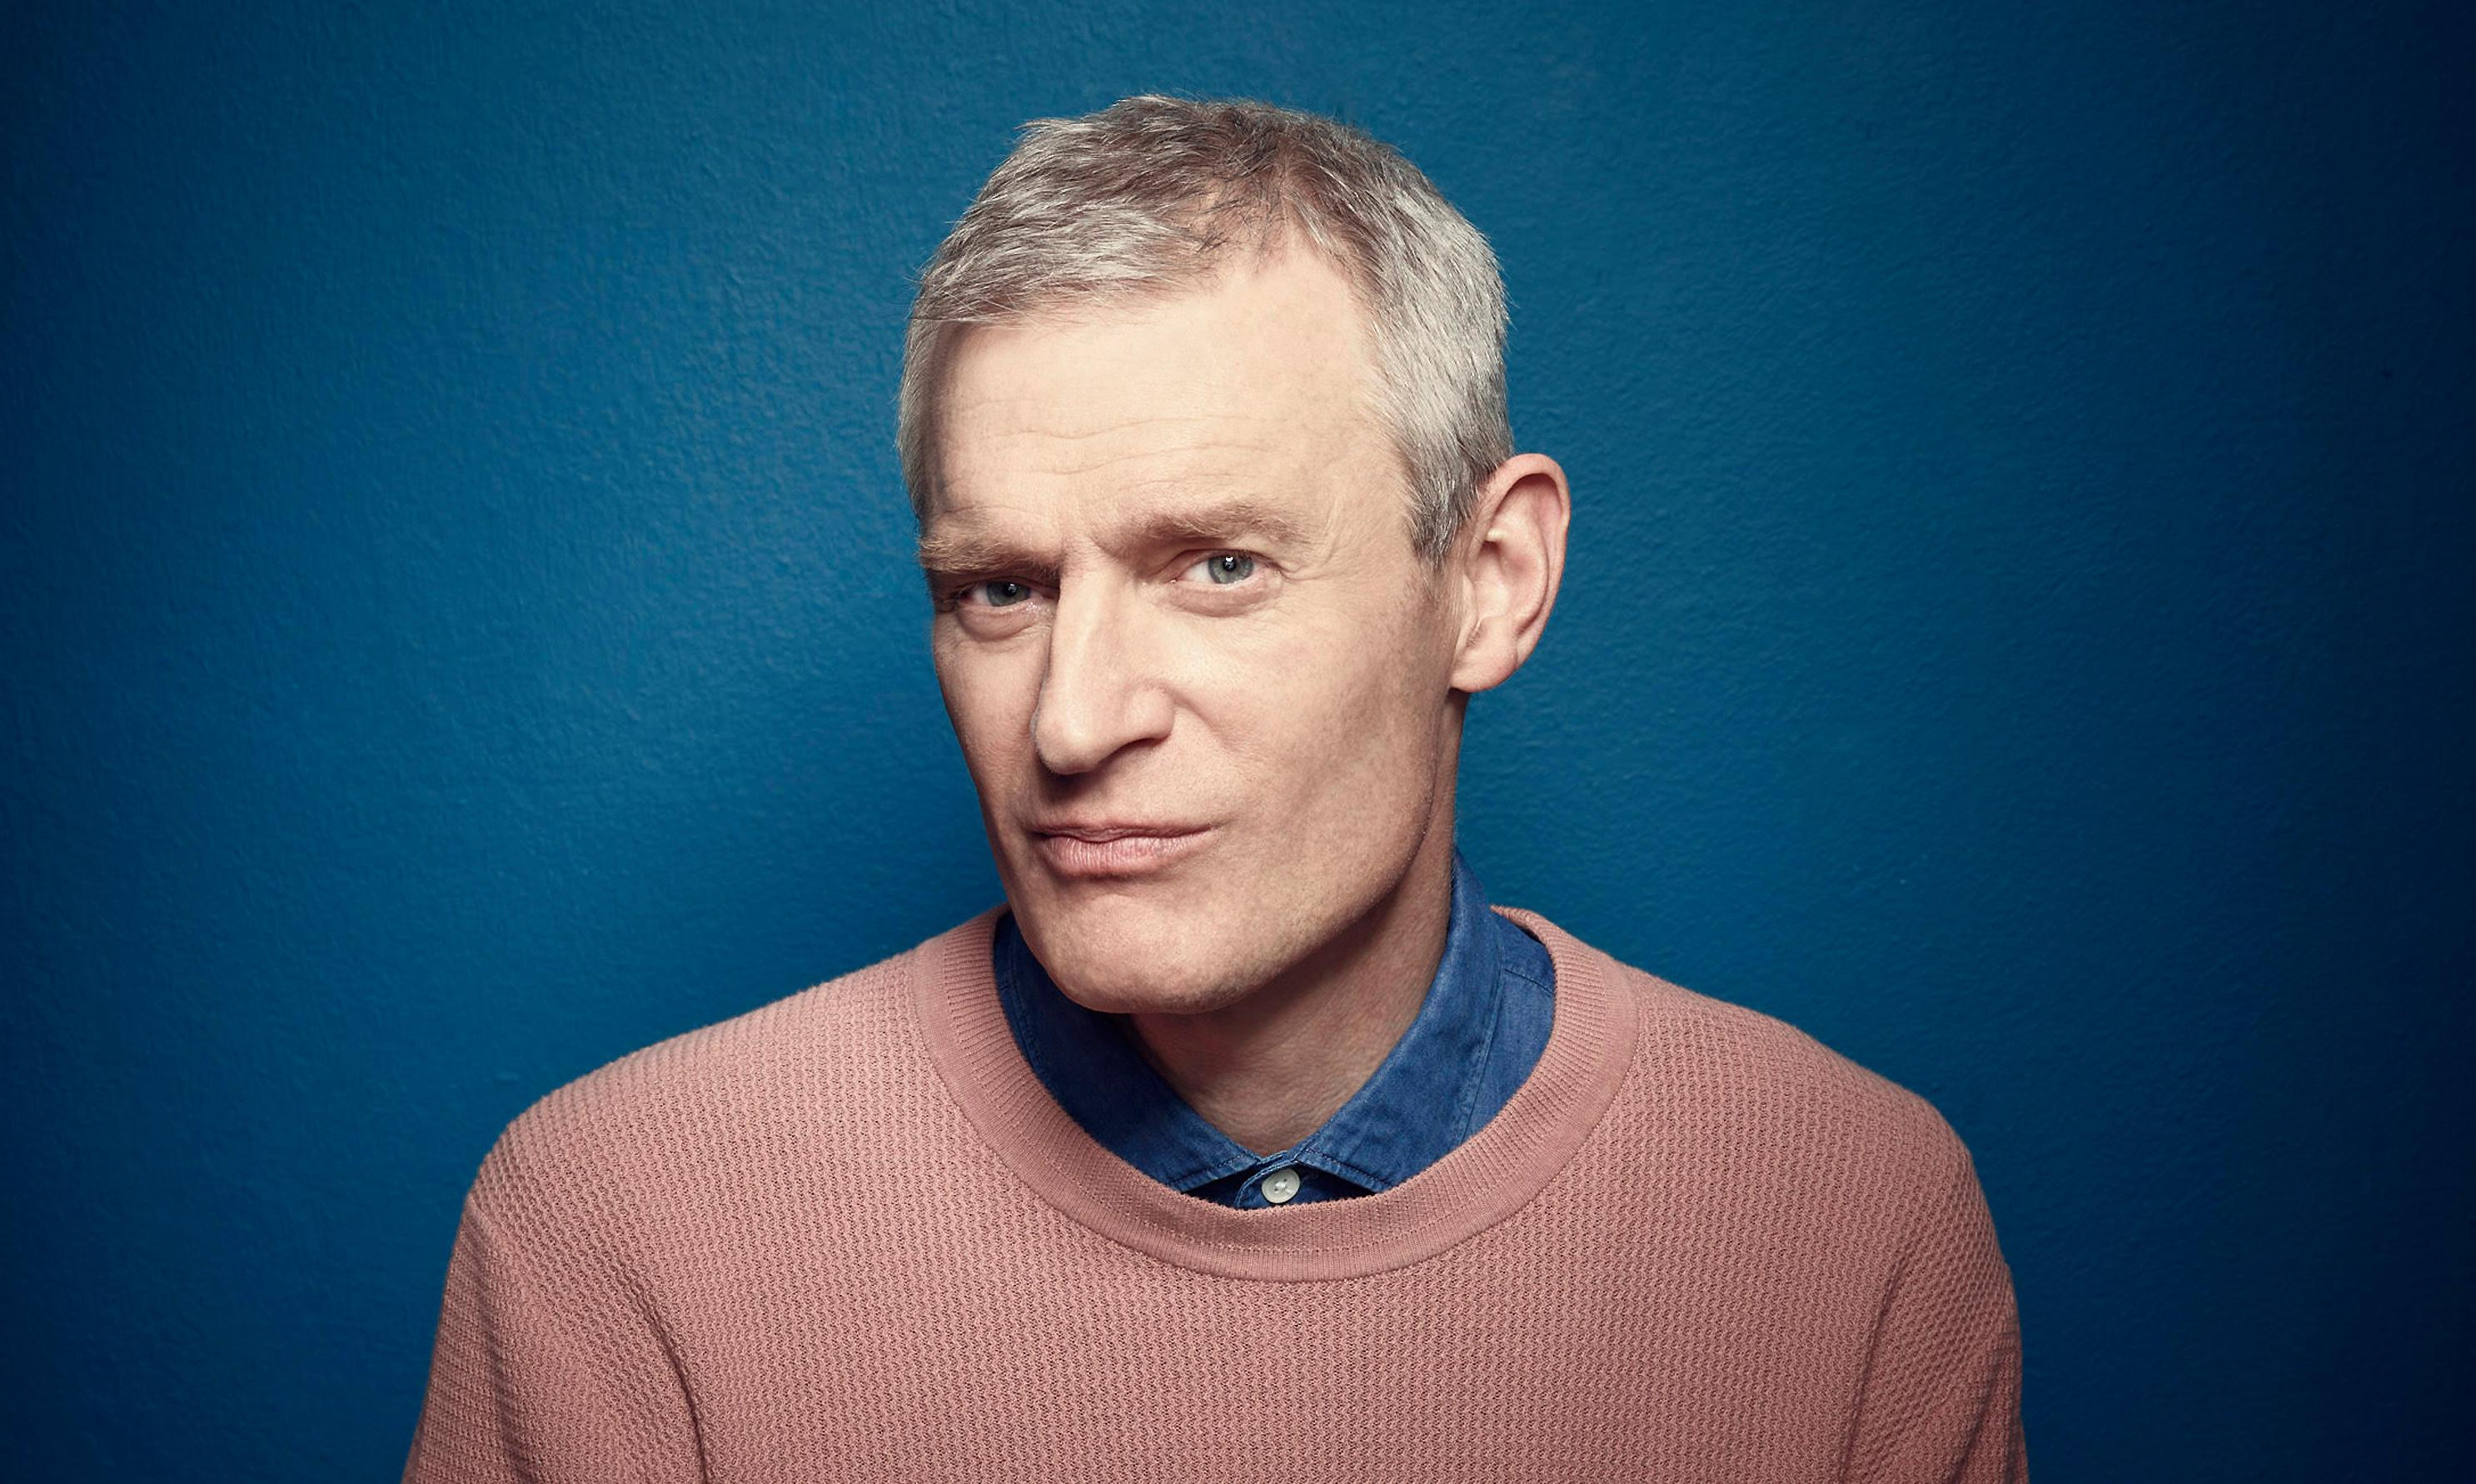 Jeremy Vine: 'A train's loo door opened when I was inside. Luckily they thought I was Jeremy Paxman'